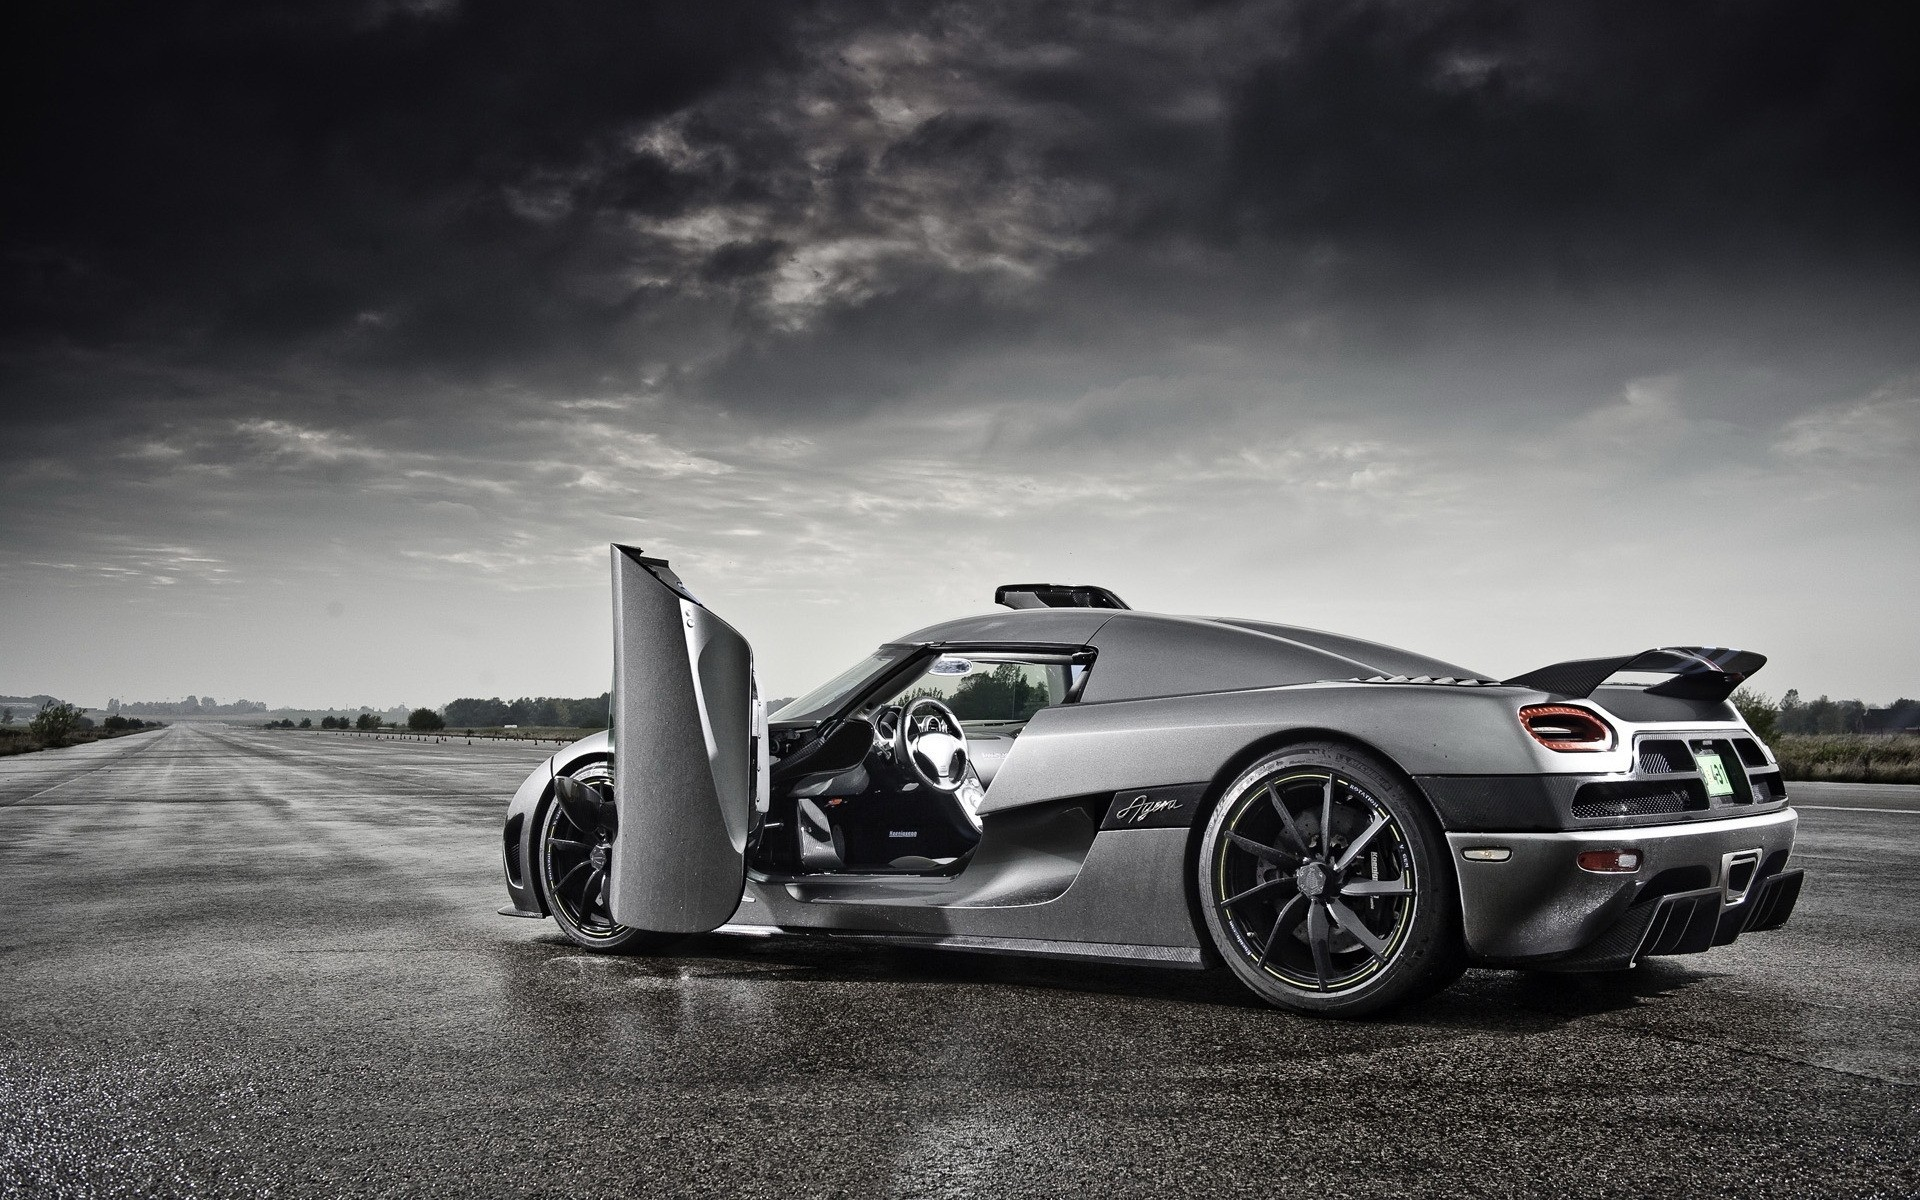 Koenigsegg-Most-Expensive-Car-Hd-Wallpapers-Images